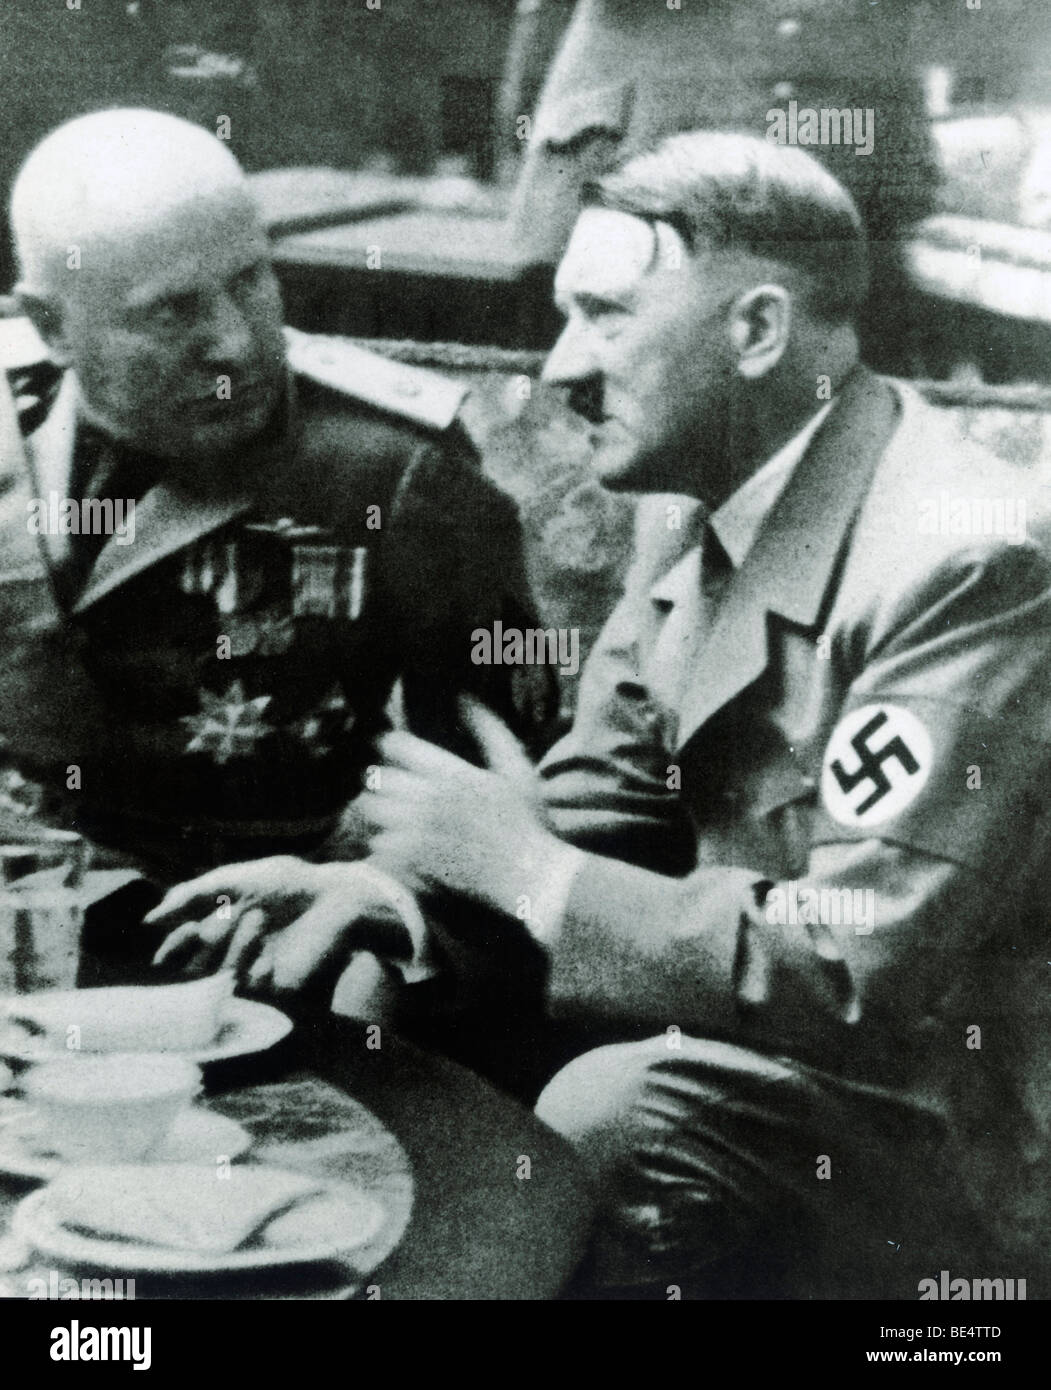 a comparison of adolf hitler and benito mussolinis lives Professor benito mussolini,  38, revolutionary socialist,  furthermore, the conquest of ethiopia cost the lives of 12,000 italians and another 4,000 to 5,000 libyans, eritreans,  the relationship between mussolini and adolf hitler was a contentious one early on.